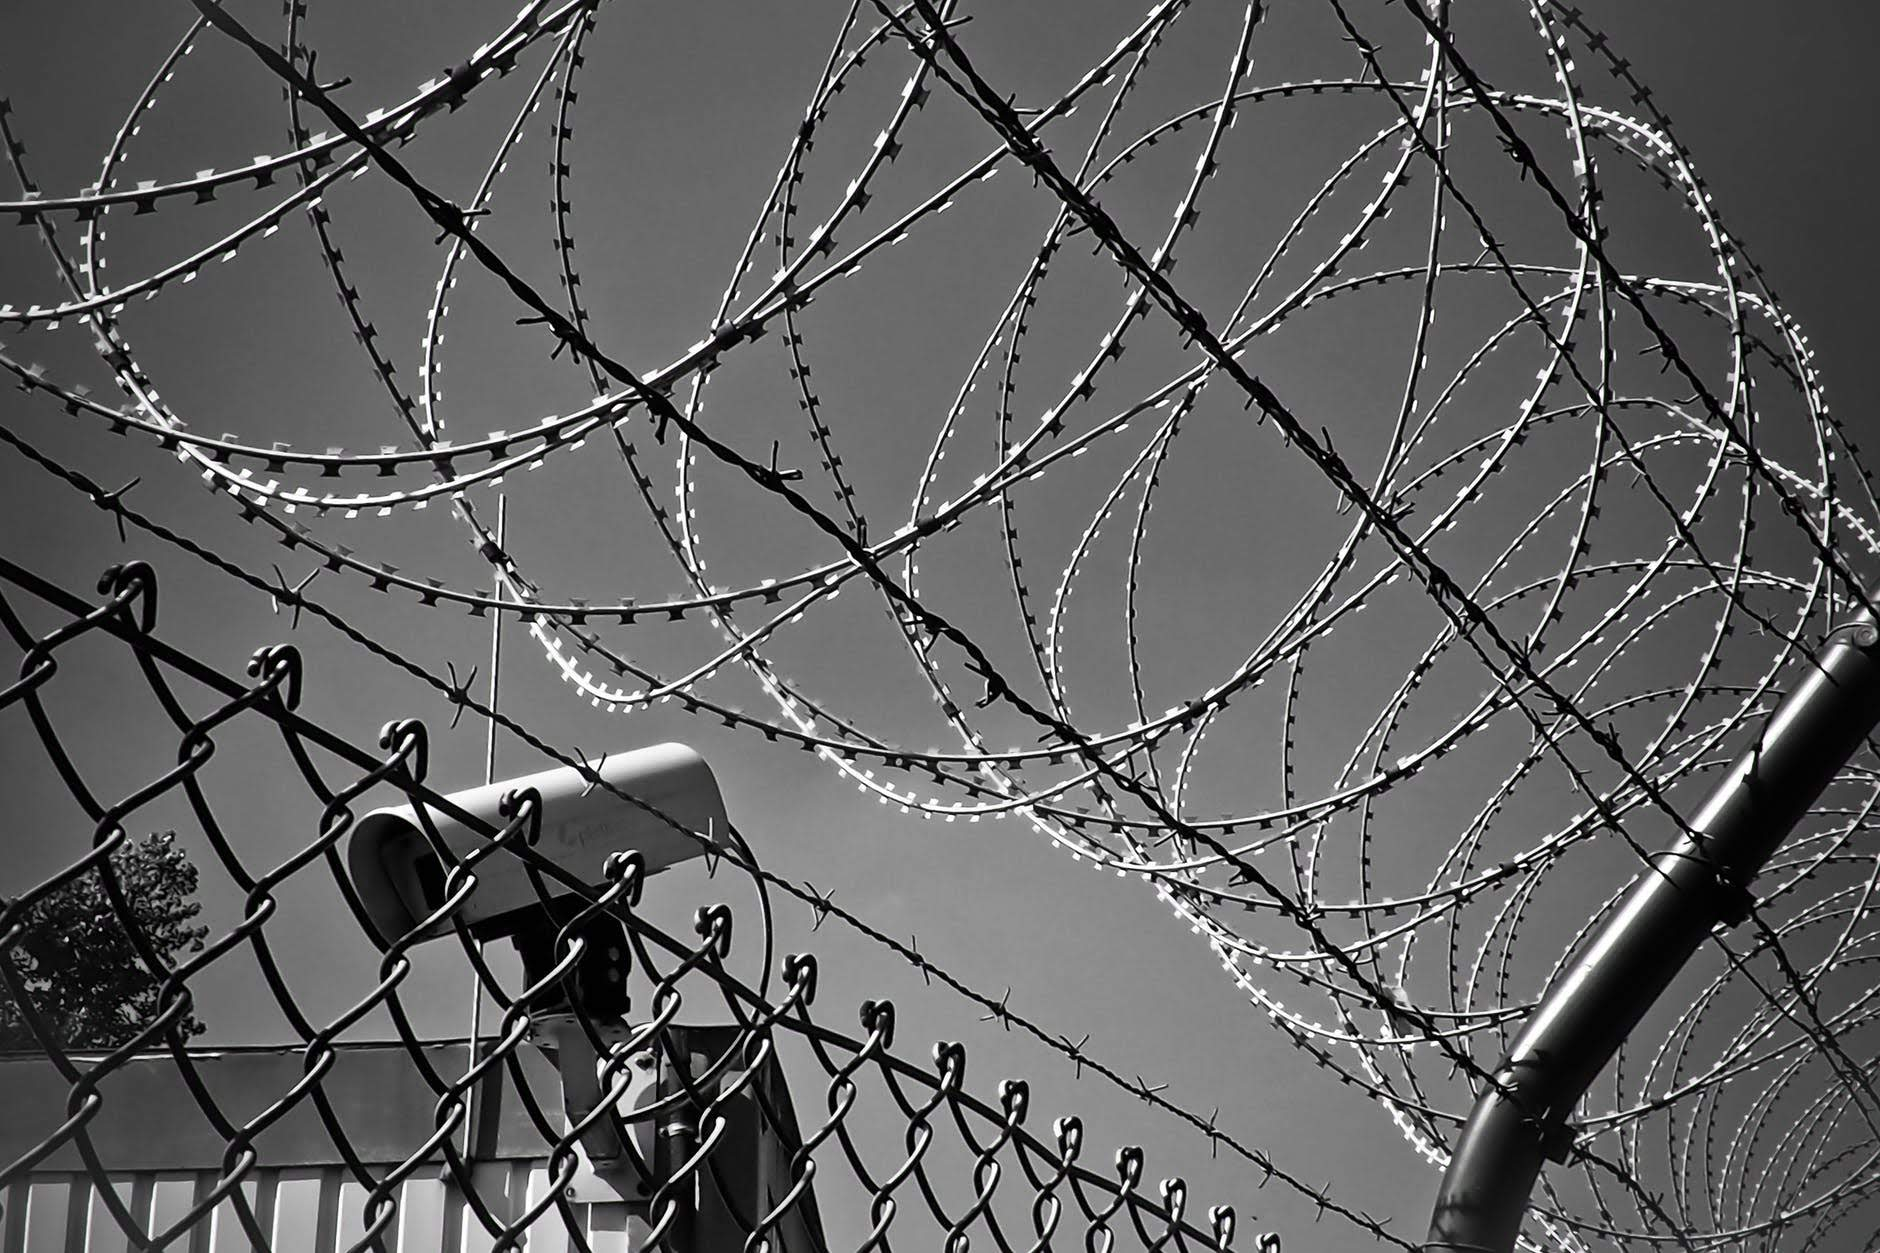 black and white image of barbed wire on fence and security camera